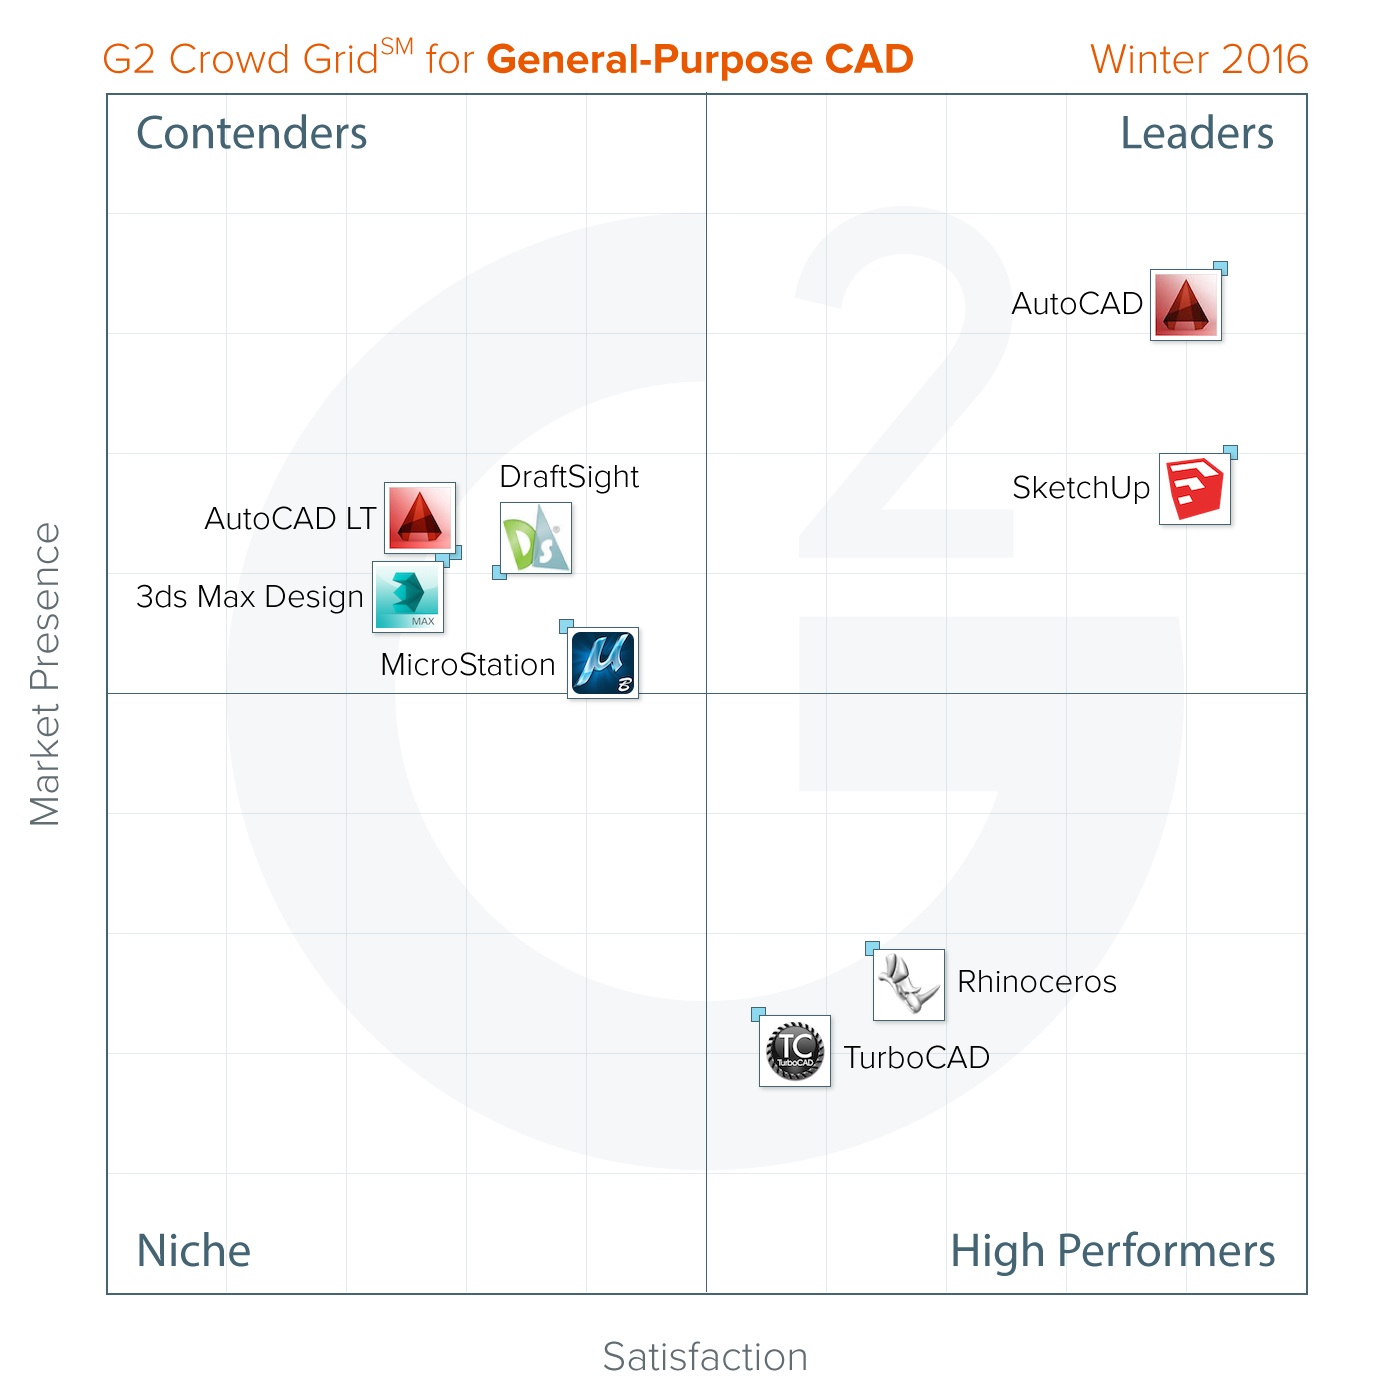 The Best General-Purpose CAD Software According To G2